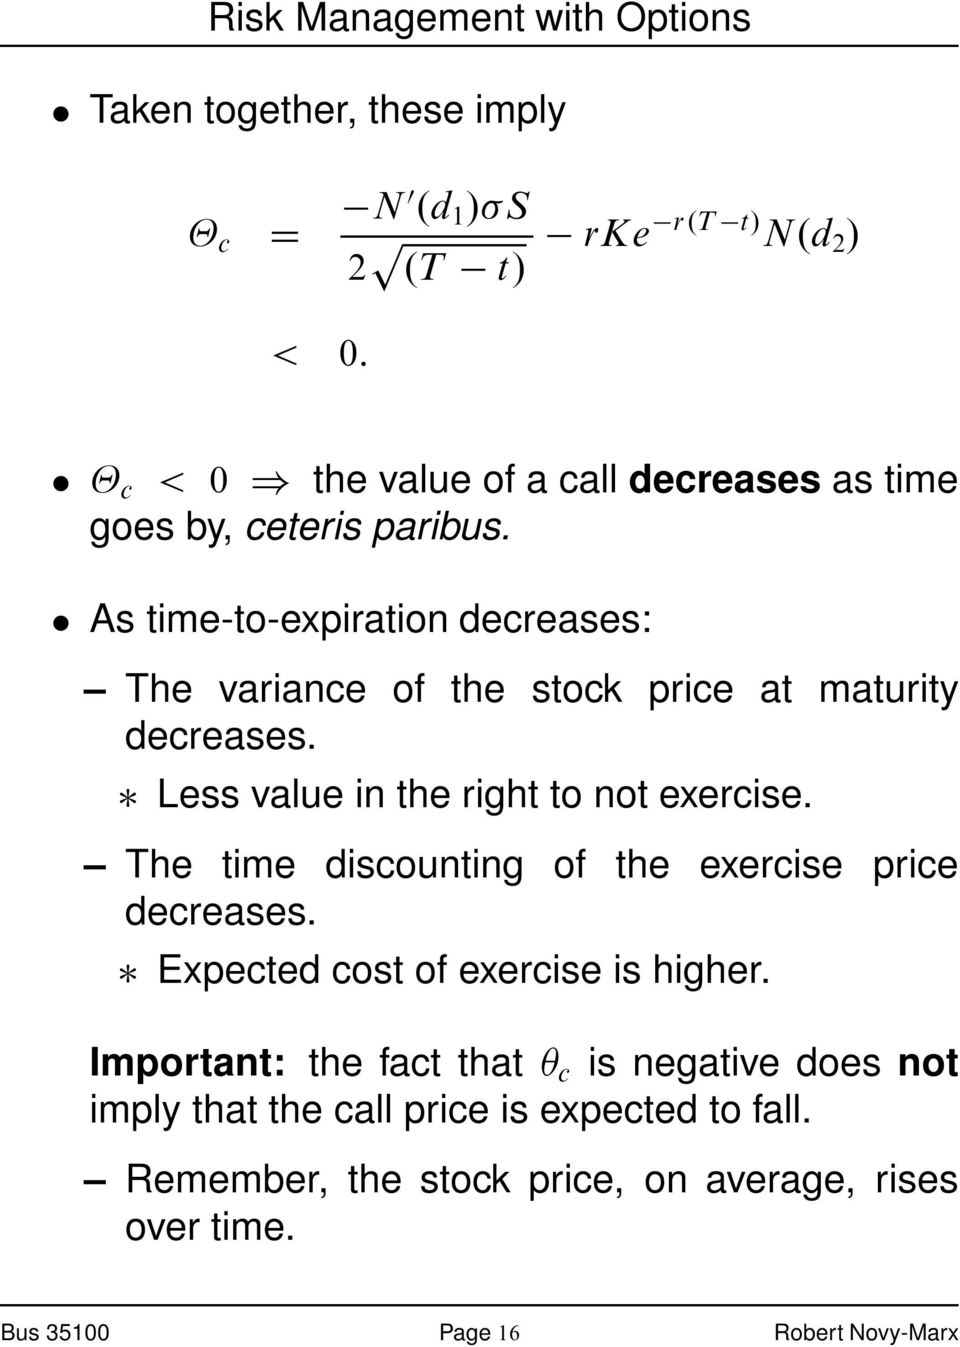 As time-to-expiration decreases: The variance of the stock price at maturity decreases. Less value in the right to not exercise.